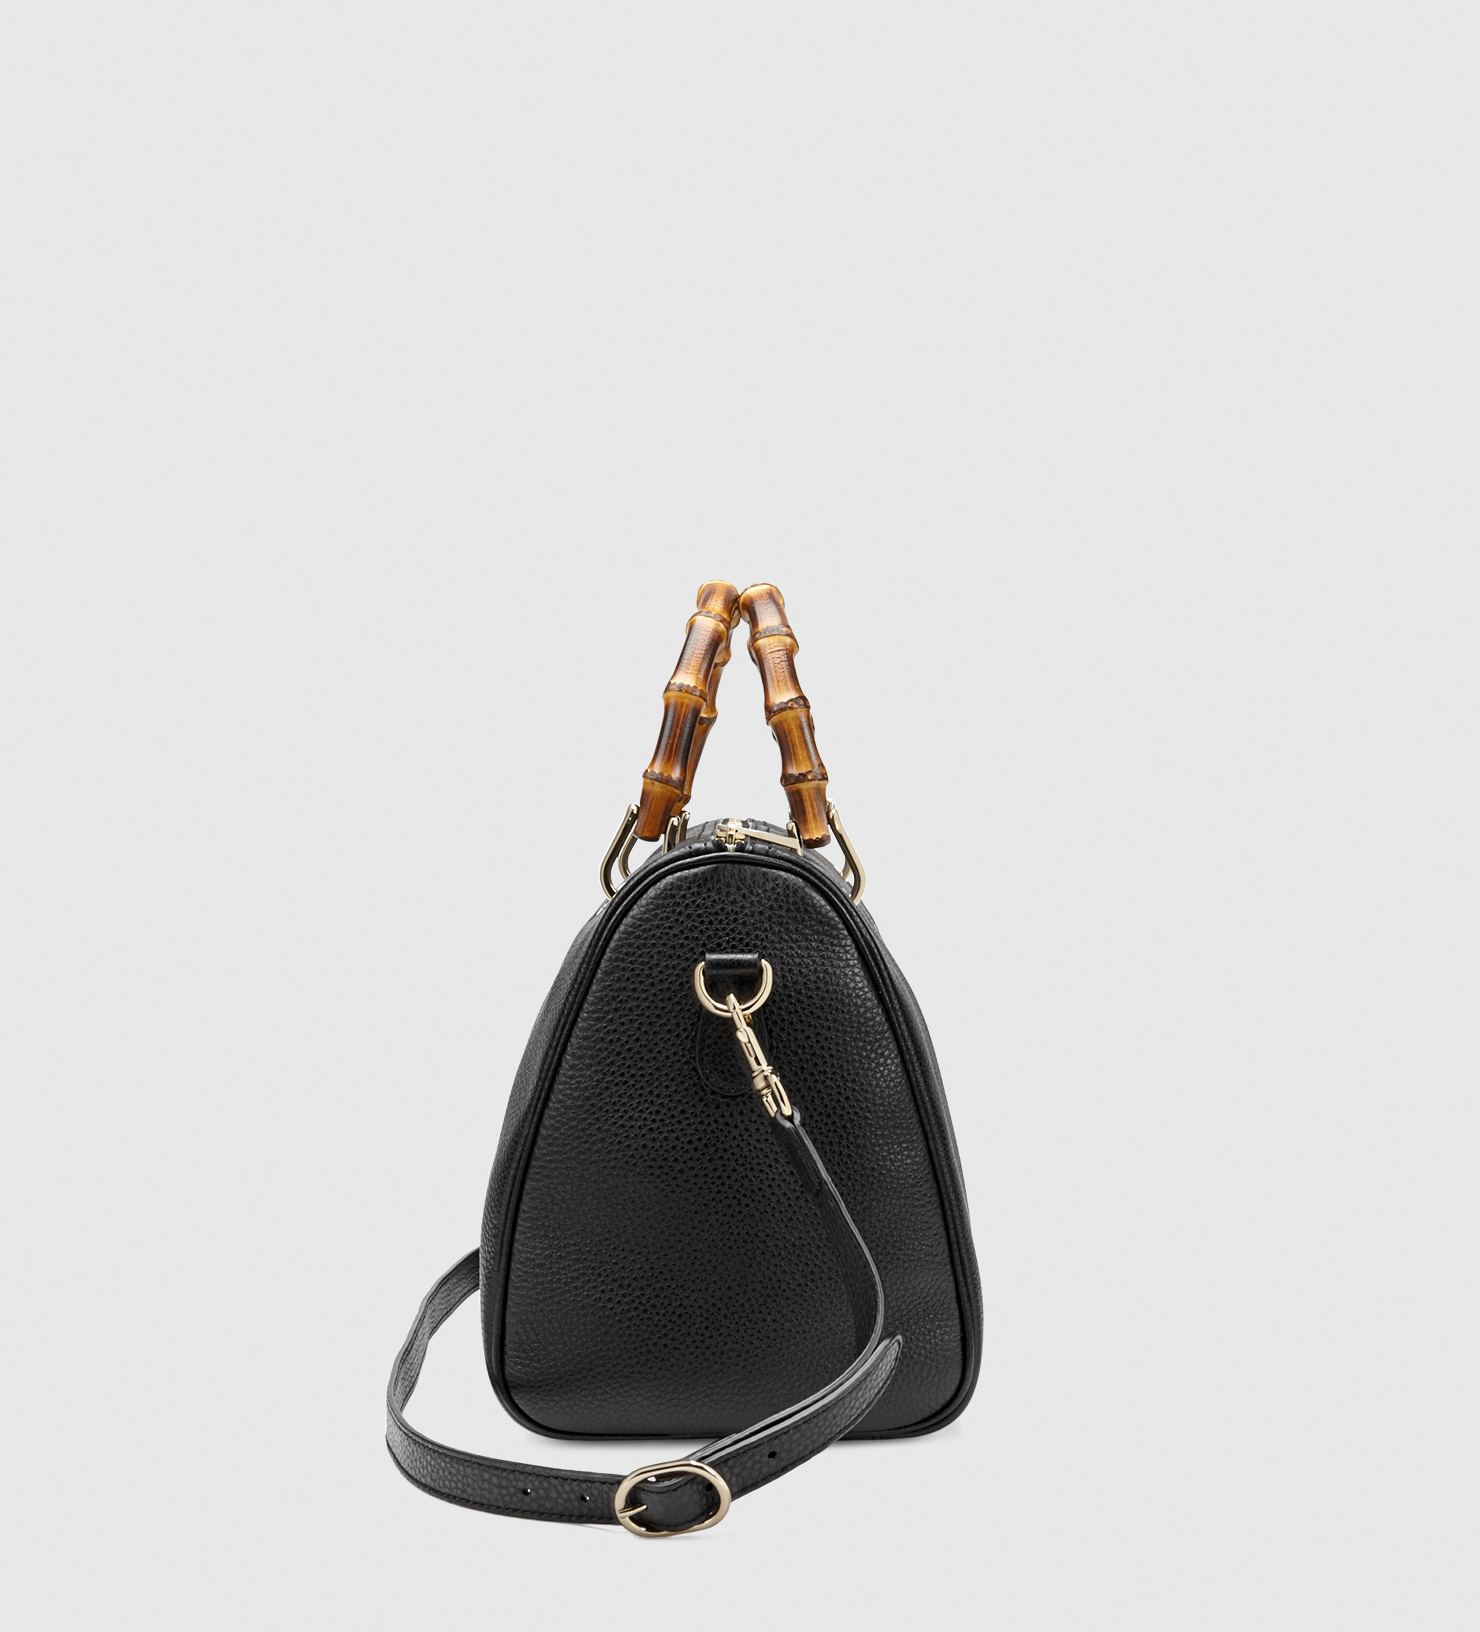 77f8350c6c48 Gucci Bamboo Shopper Leather Boston Bag in Black - Lyst